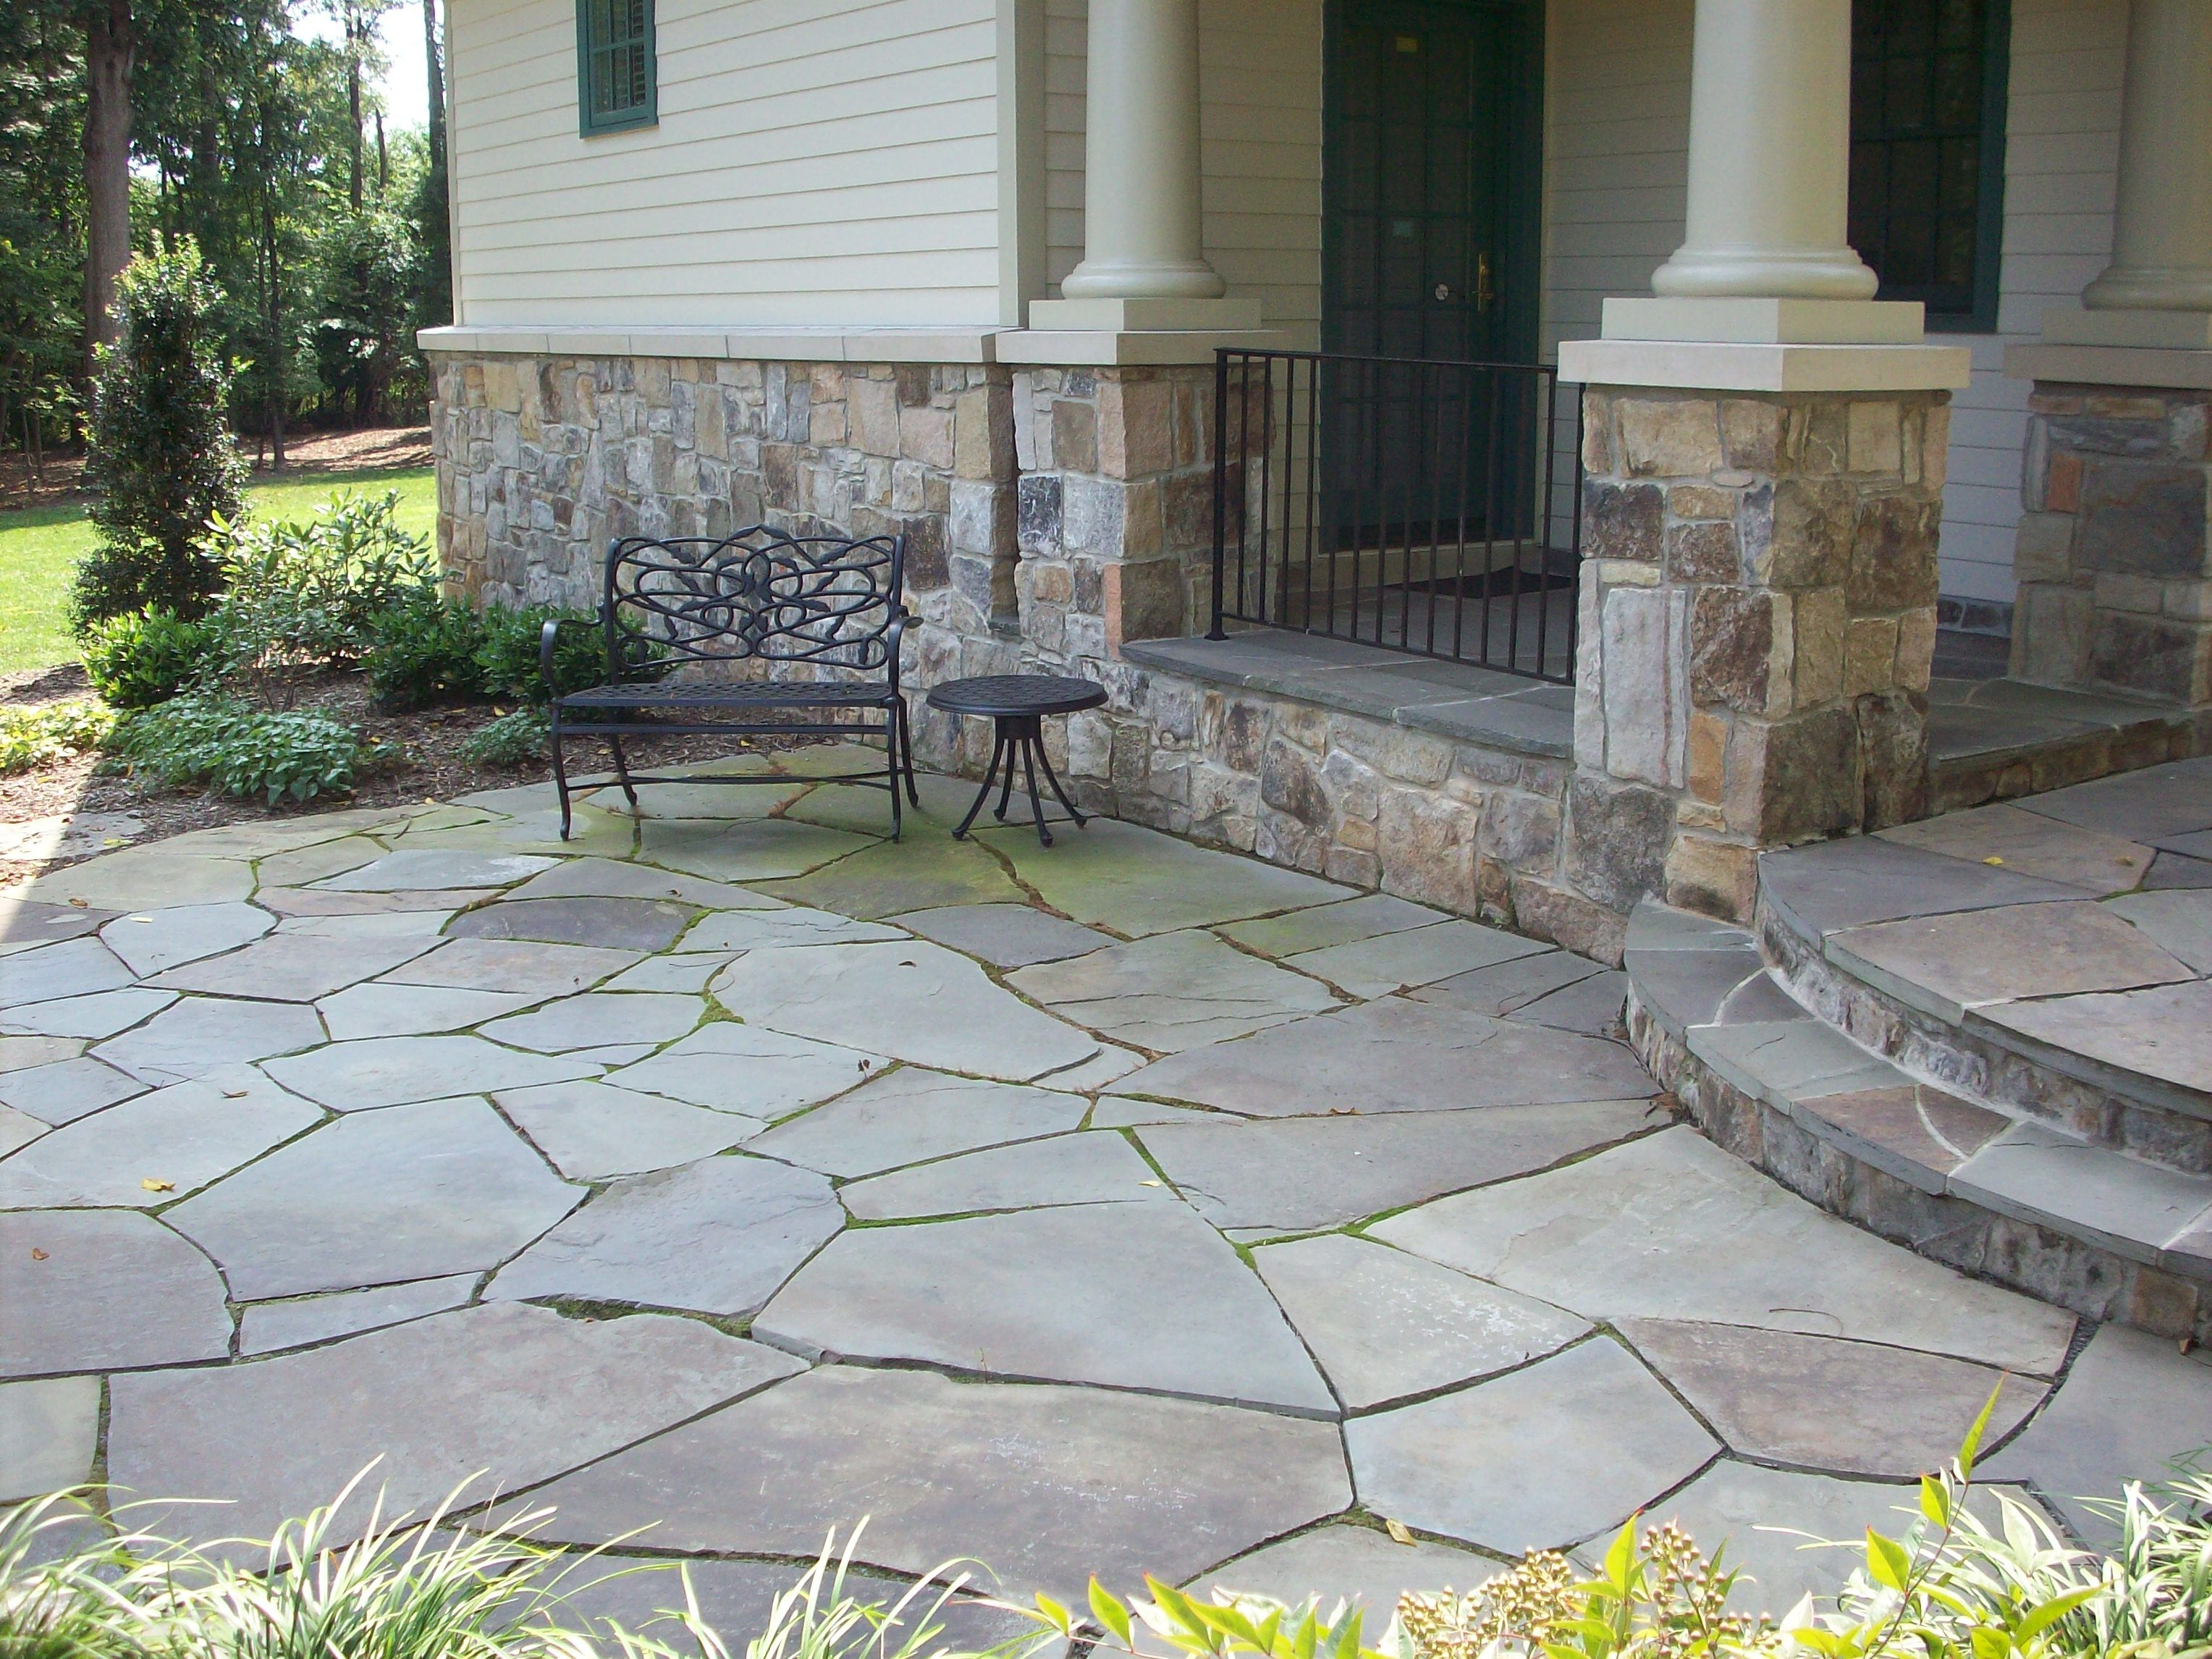 photo marin refinishing stone cleaning flagstone ca natural patios sealed patio improperly dirty mold in algae